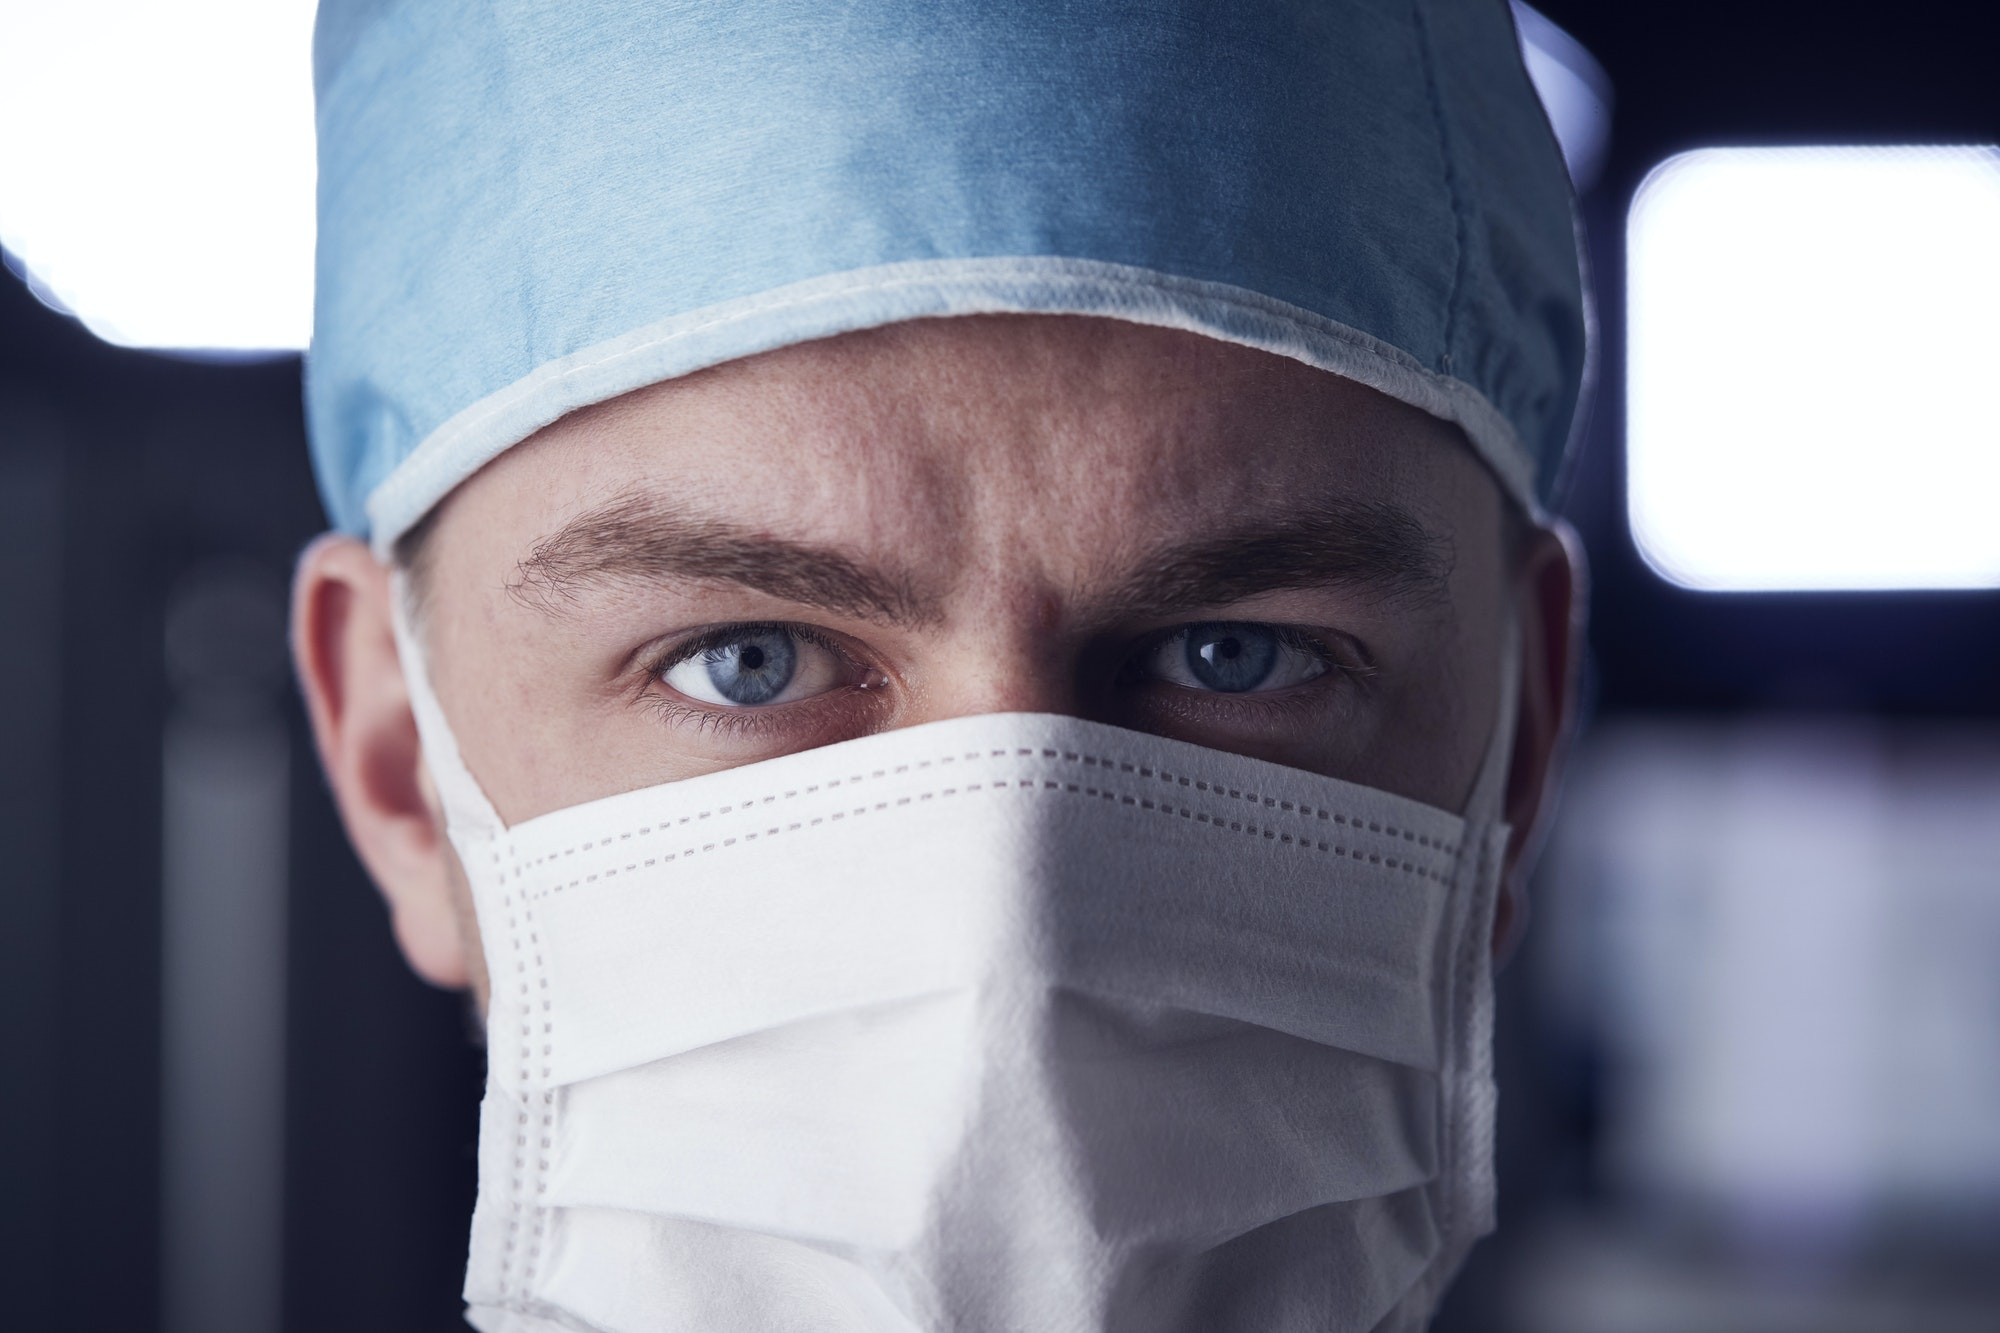 Male healthcare worker in scrubs, head shot